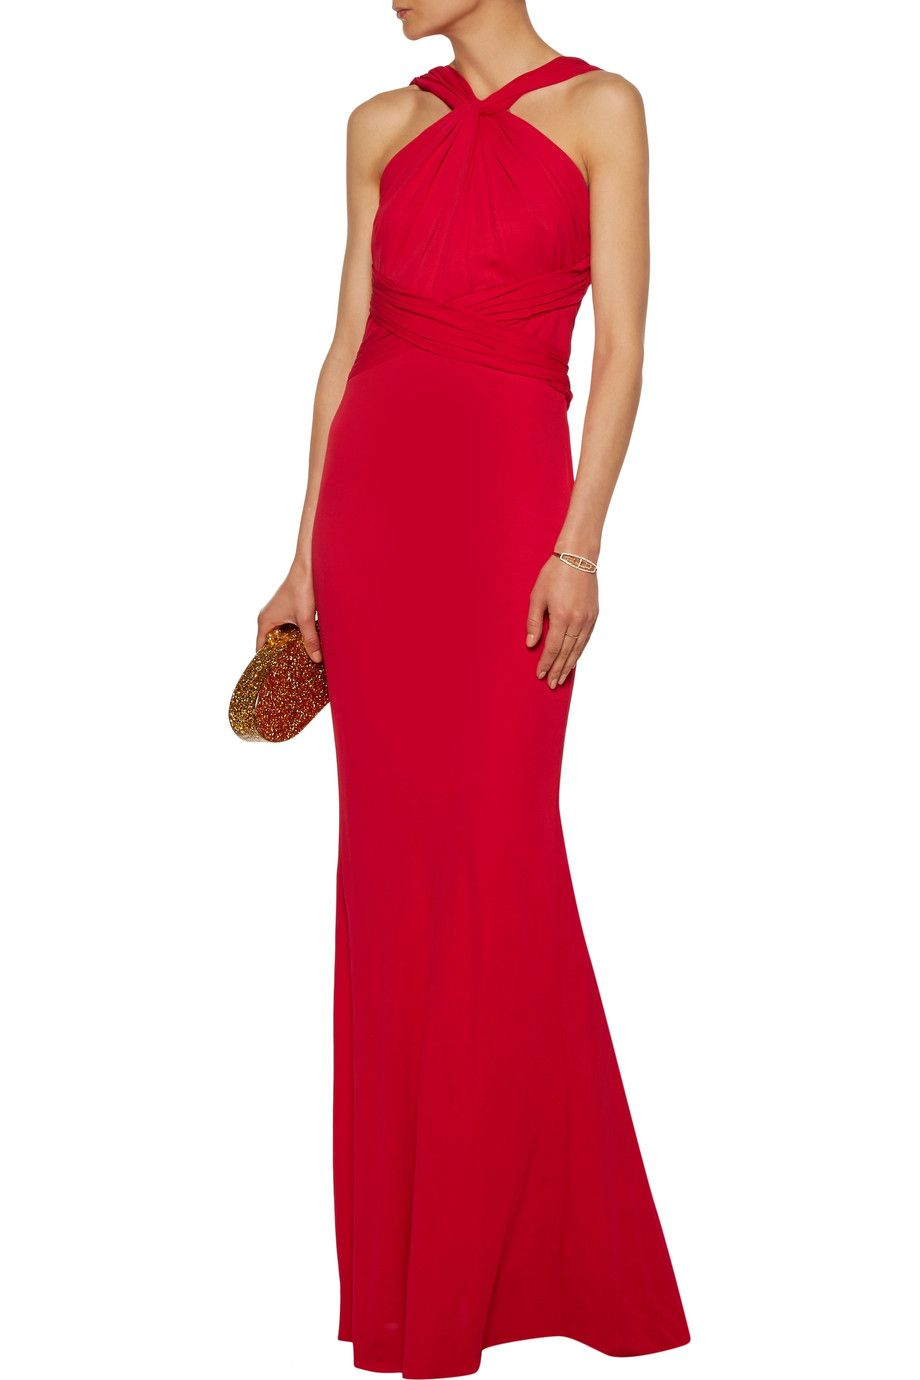 Shop on-sale Badgley Mischka Gathered stretch-crepe gown. Browse ...